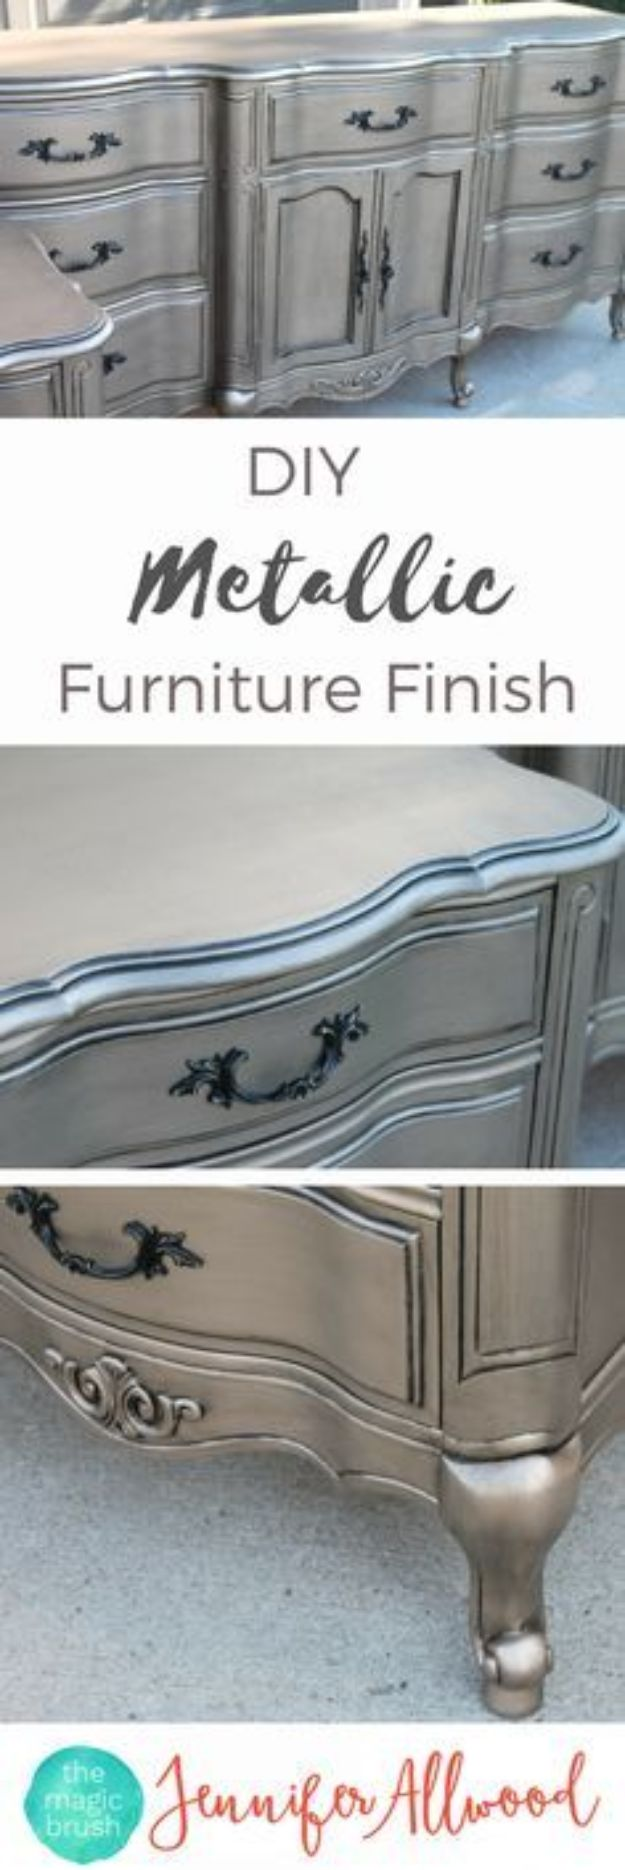 DIY Painting Hacks - DIY Metallic Furniture Finish - Easy Ways To Shortcut House Painting - Wall Prep, Painters Tape, Trim, Edging, Ceiling, Exterior Cutting In, Furniture and Crafts Paint Tips - Paint Your House Or Your Room With These Time Saving Painter Hacks and Quick Tricks http://diyjoy.com/diy-painting-hacks